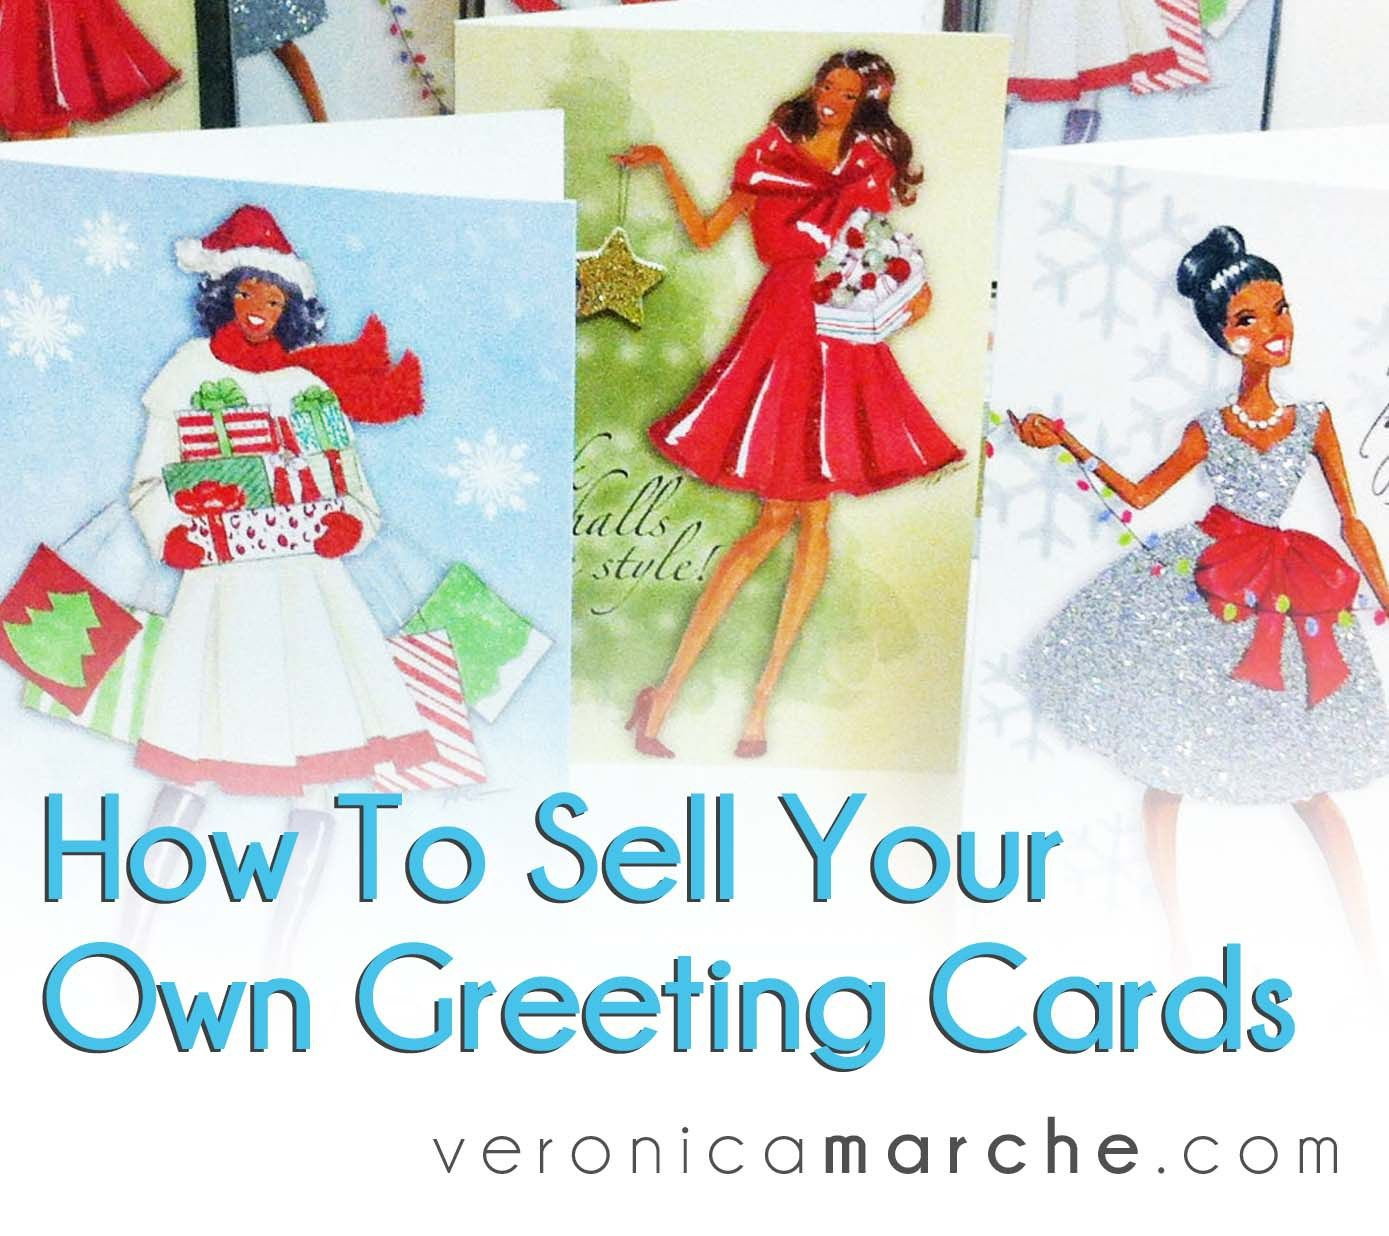 How to sell your own greeting cards by veronica marche pick a card how to sell your own greeting cards by veronica marche kristyandbryce Gallery